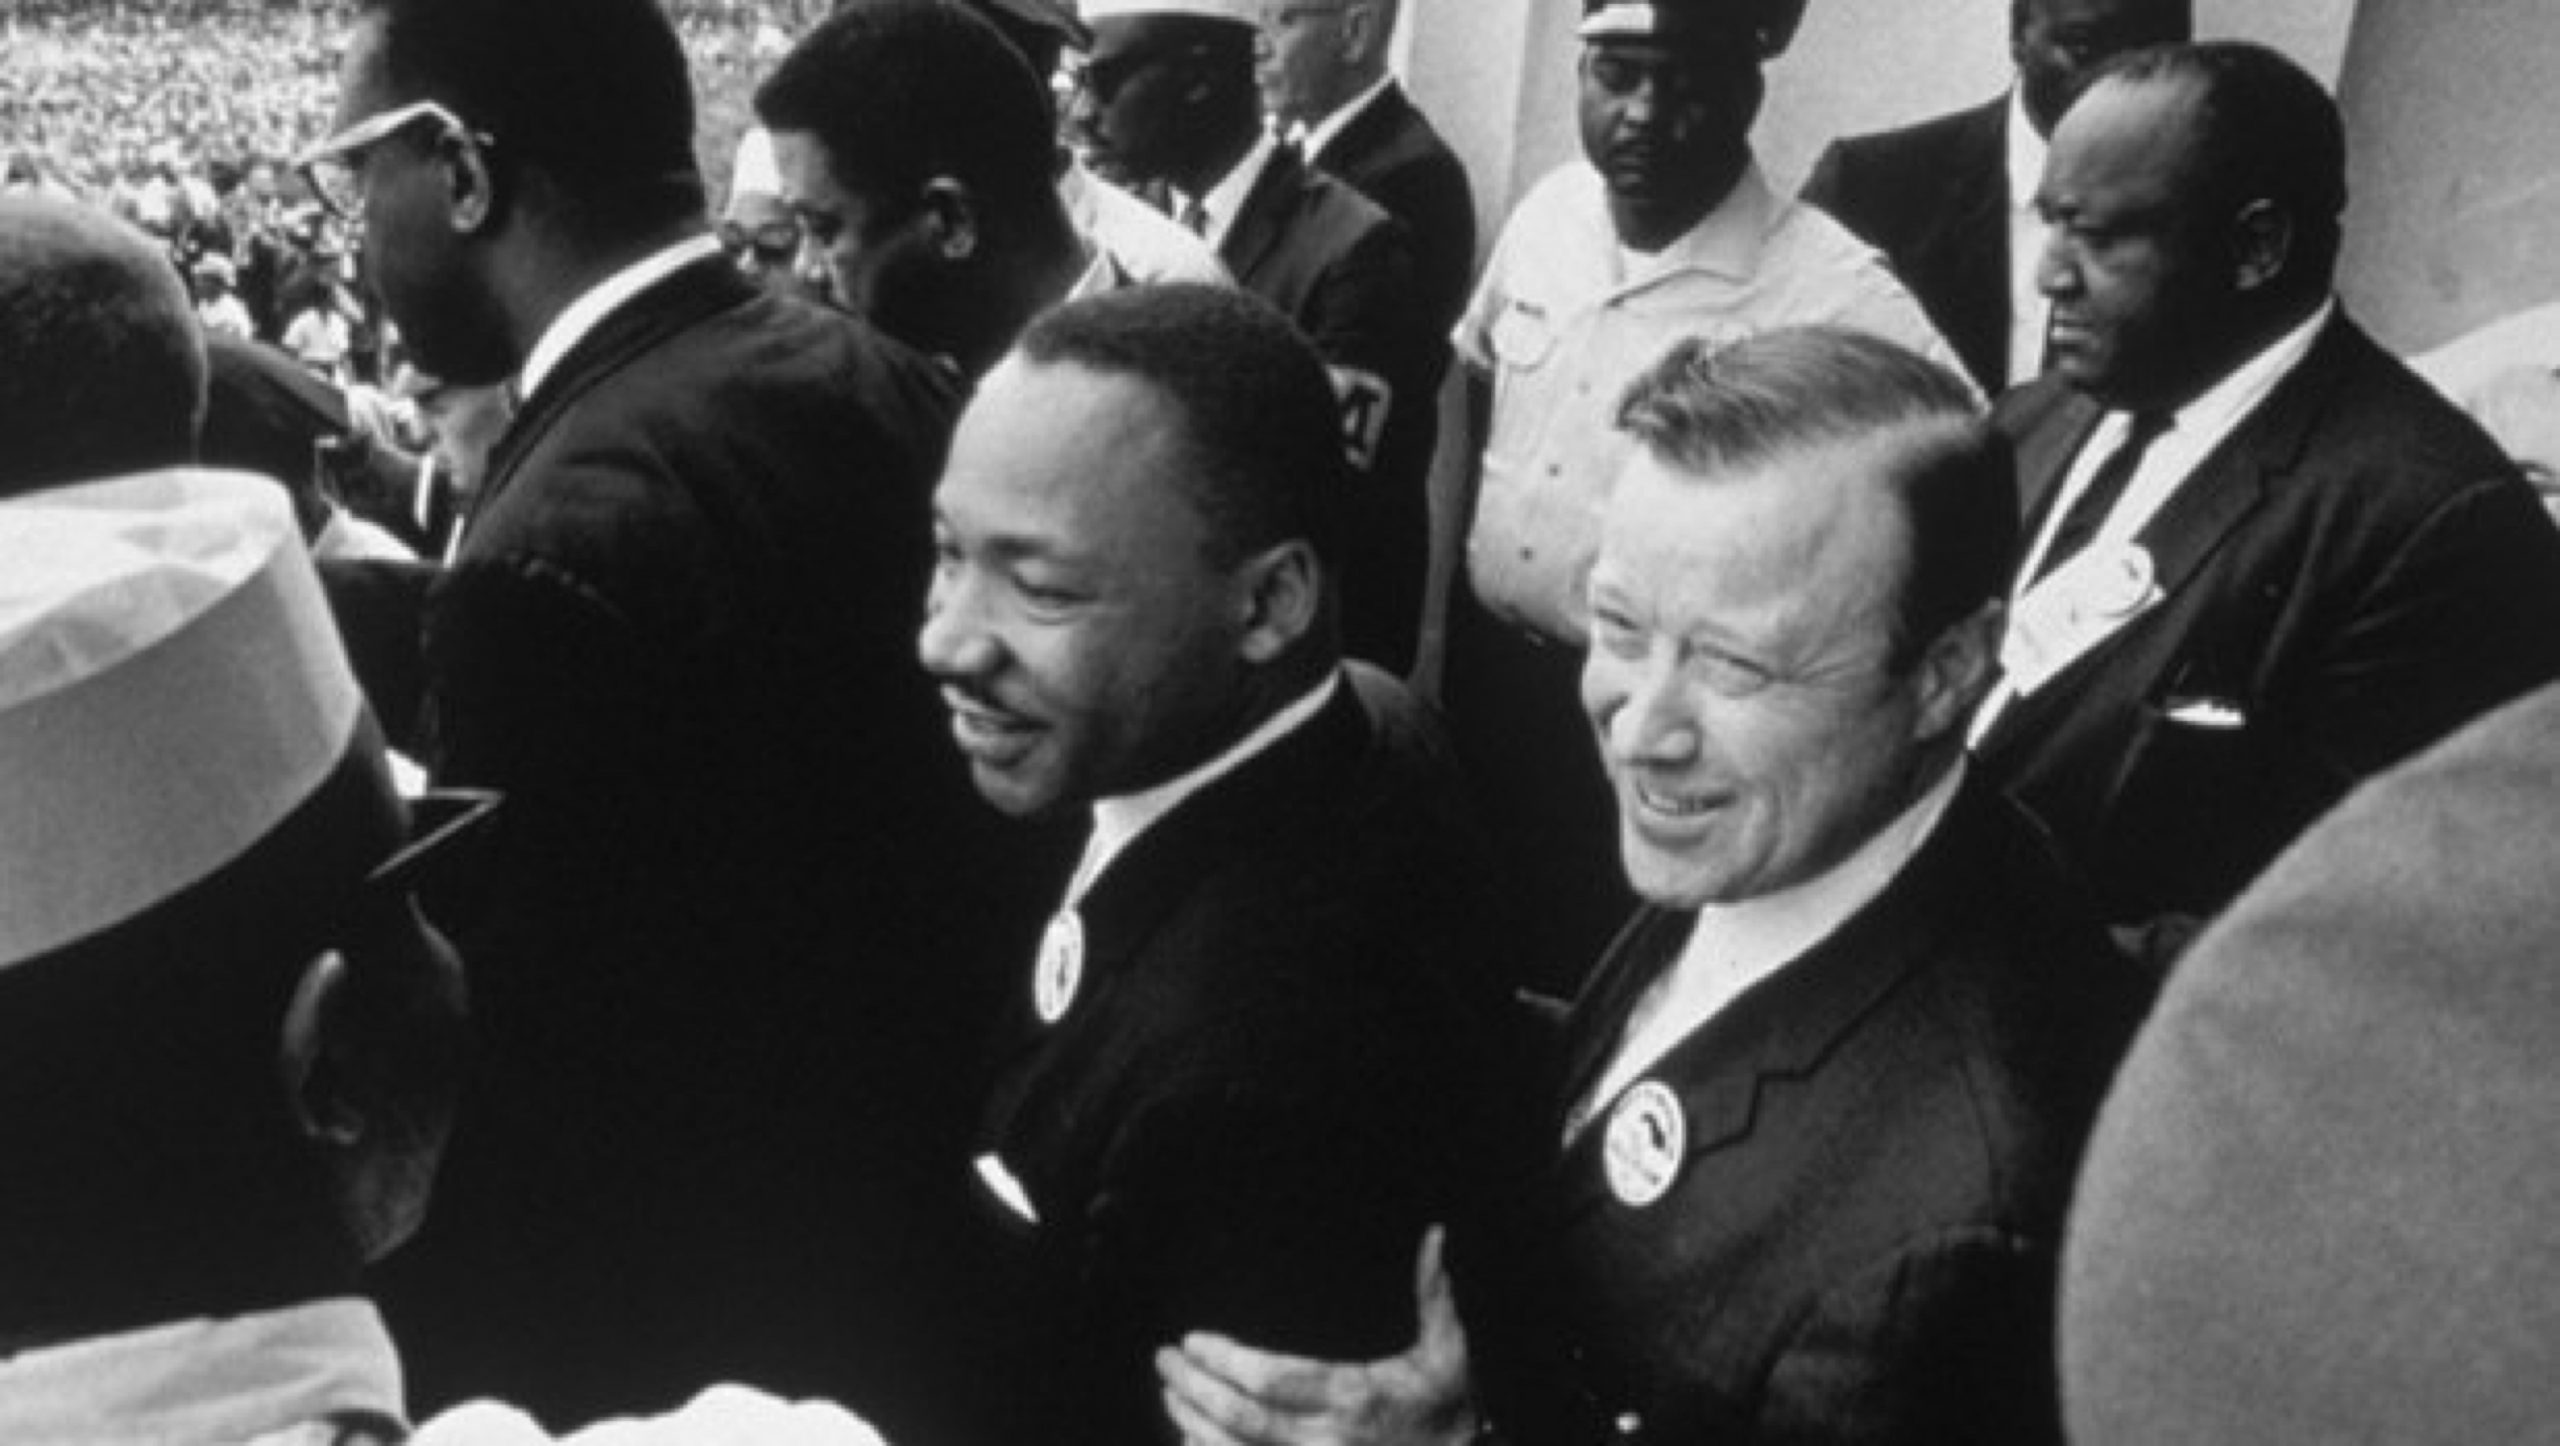 1965 — Doctor Martin Luther King Jr. and Walter Reuther, President of the UAW and the March on Washington